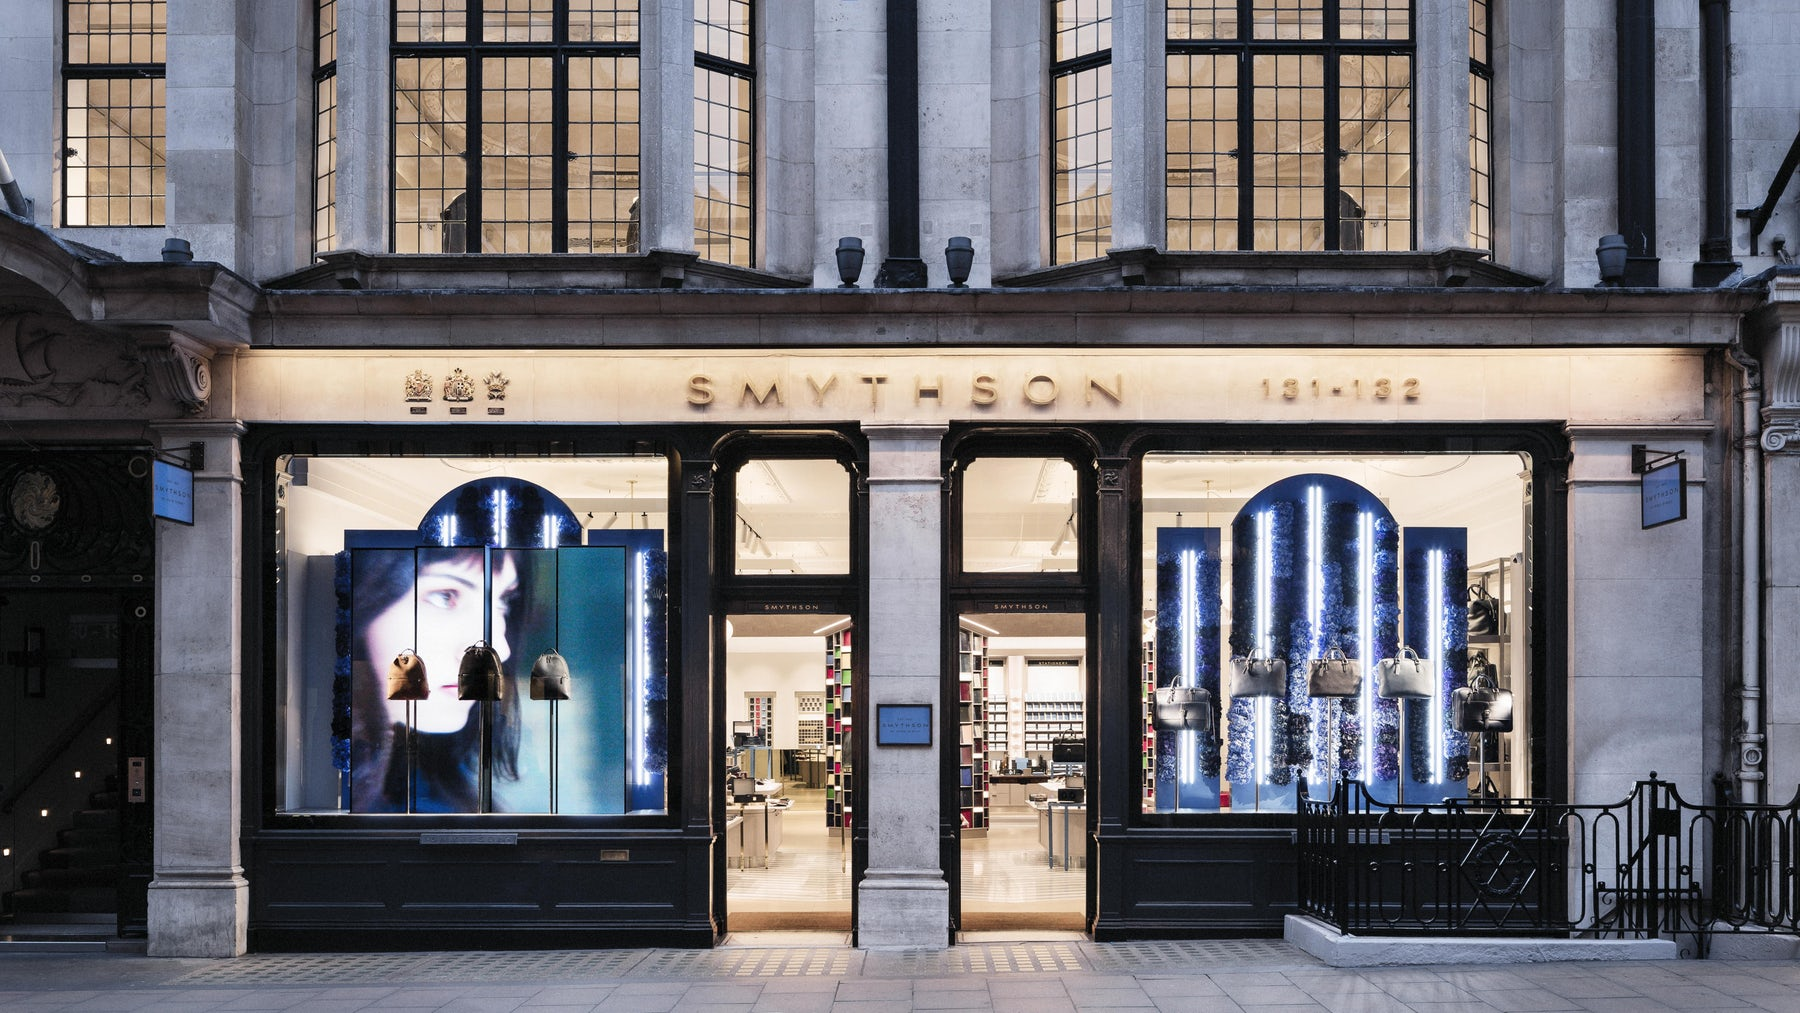 Smythson New Bond Street  store | Source: Shutterstock